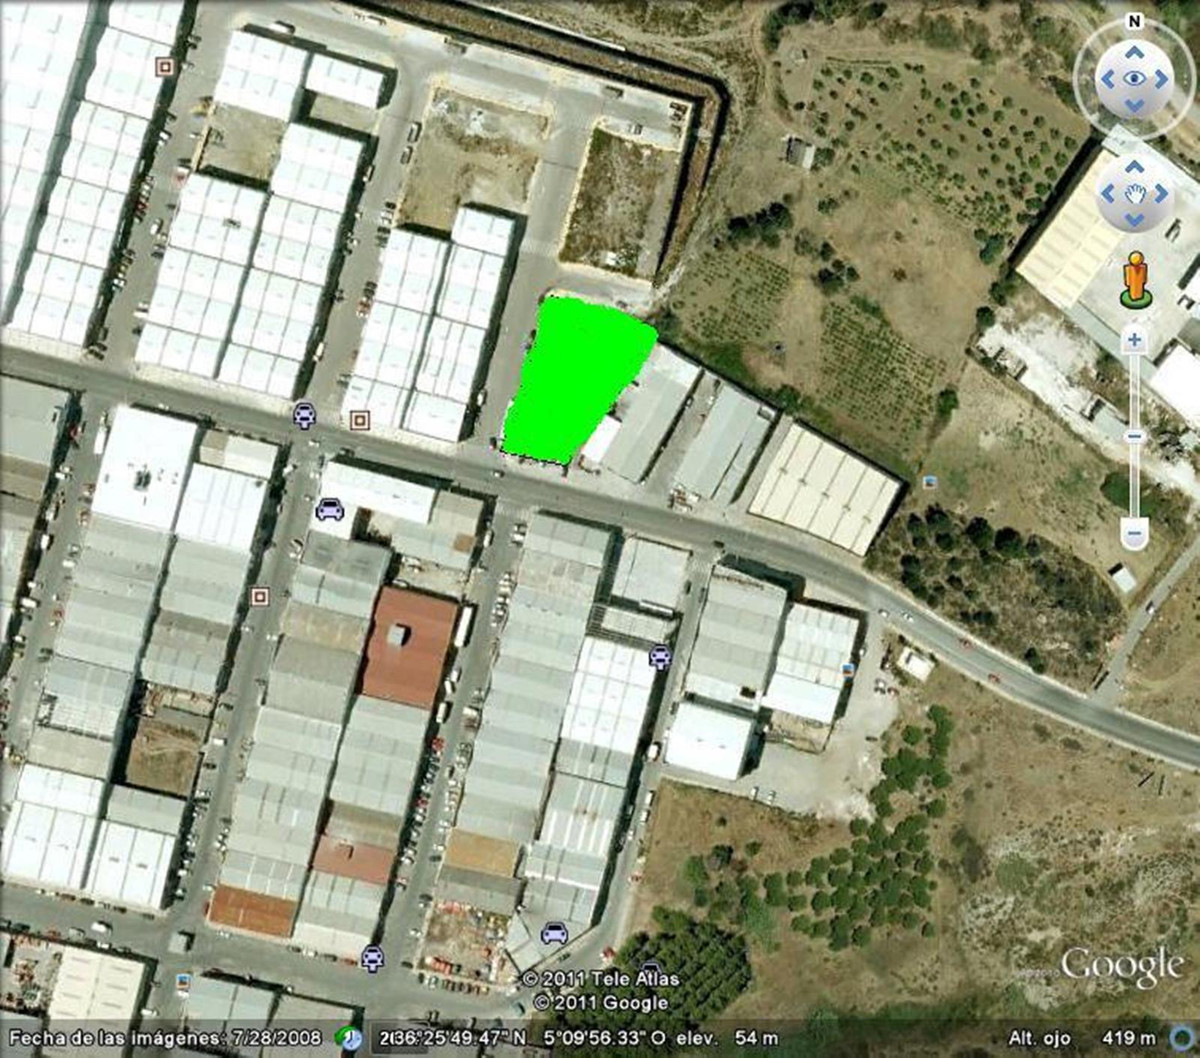 Investment to purchase a top location plot of land on the poligono of Estepona. This plot of land is,Spain